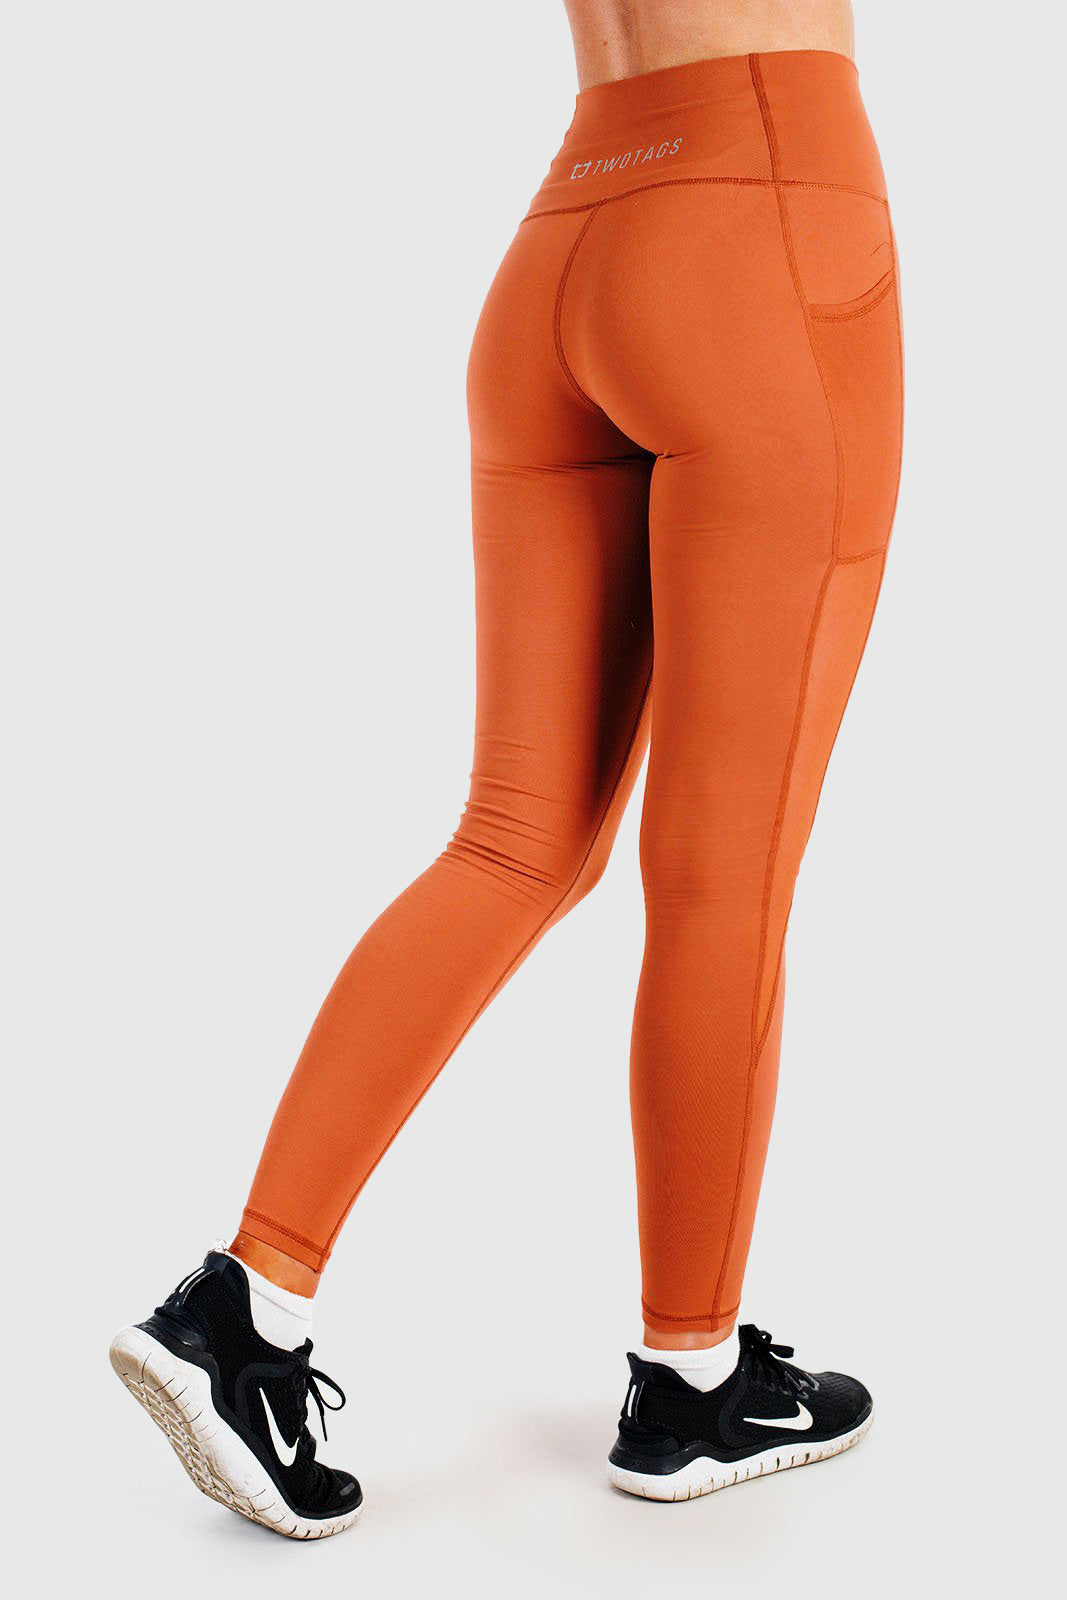 Twotags Ladies Highwaisted Stride Mesh Leggings – Rust